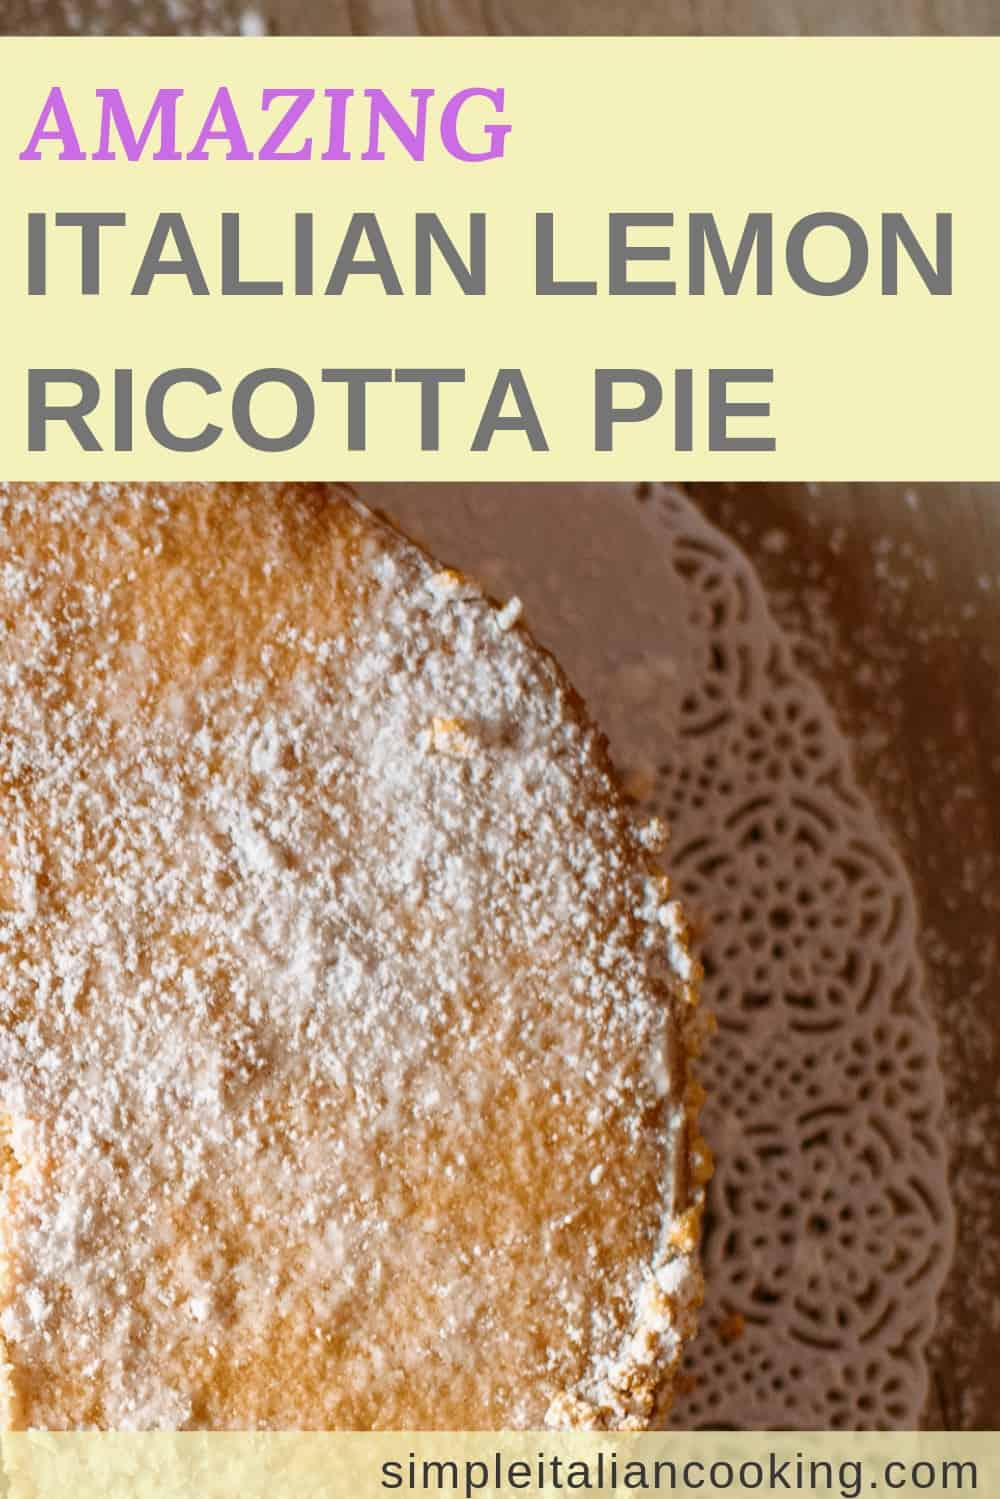 Recipe – How to Make Italian Lemon Ricotta Pie